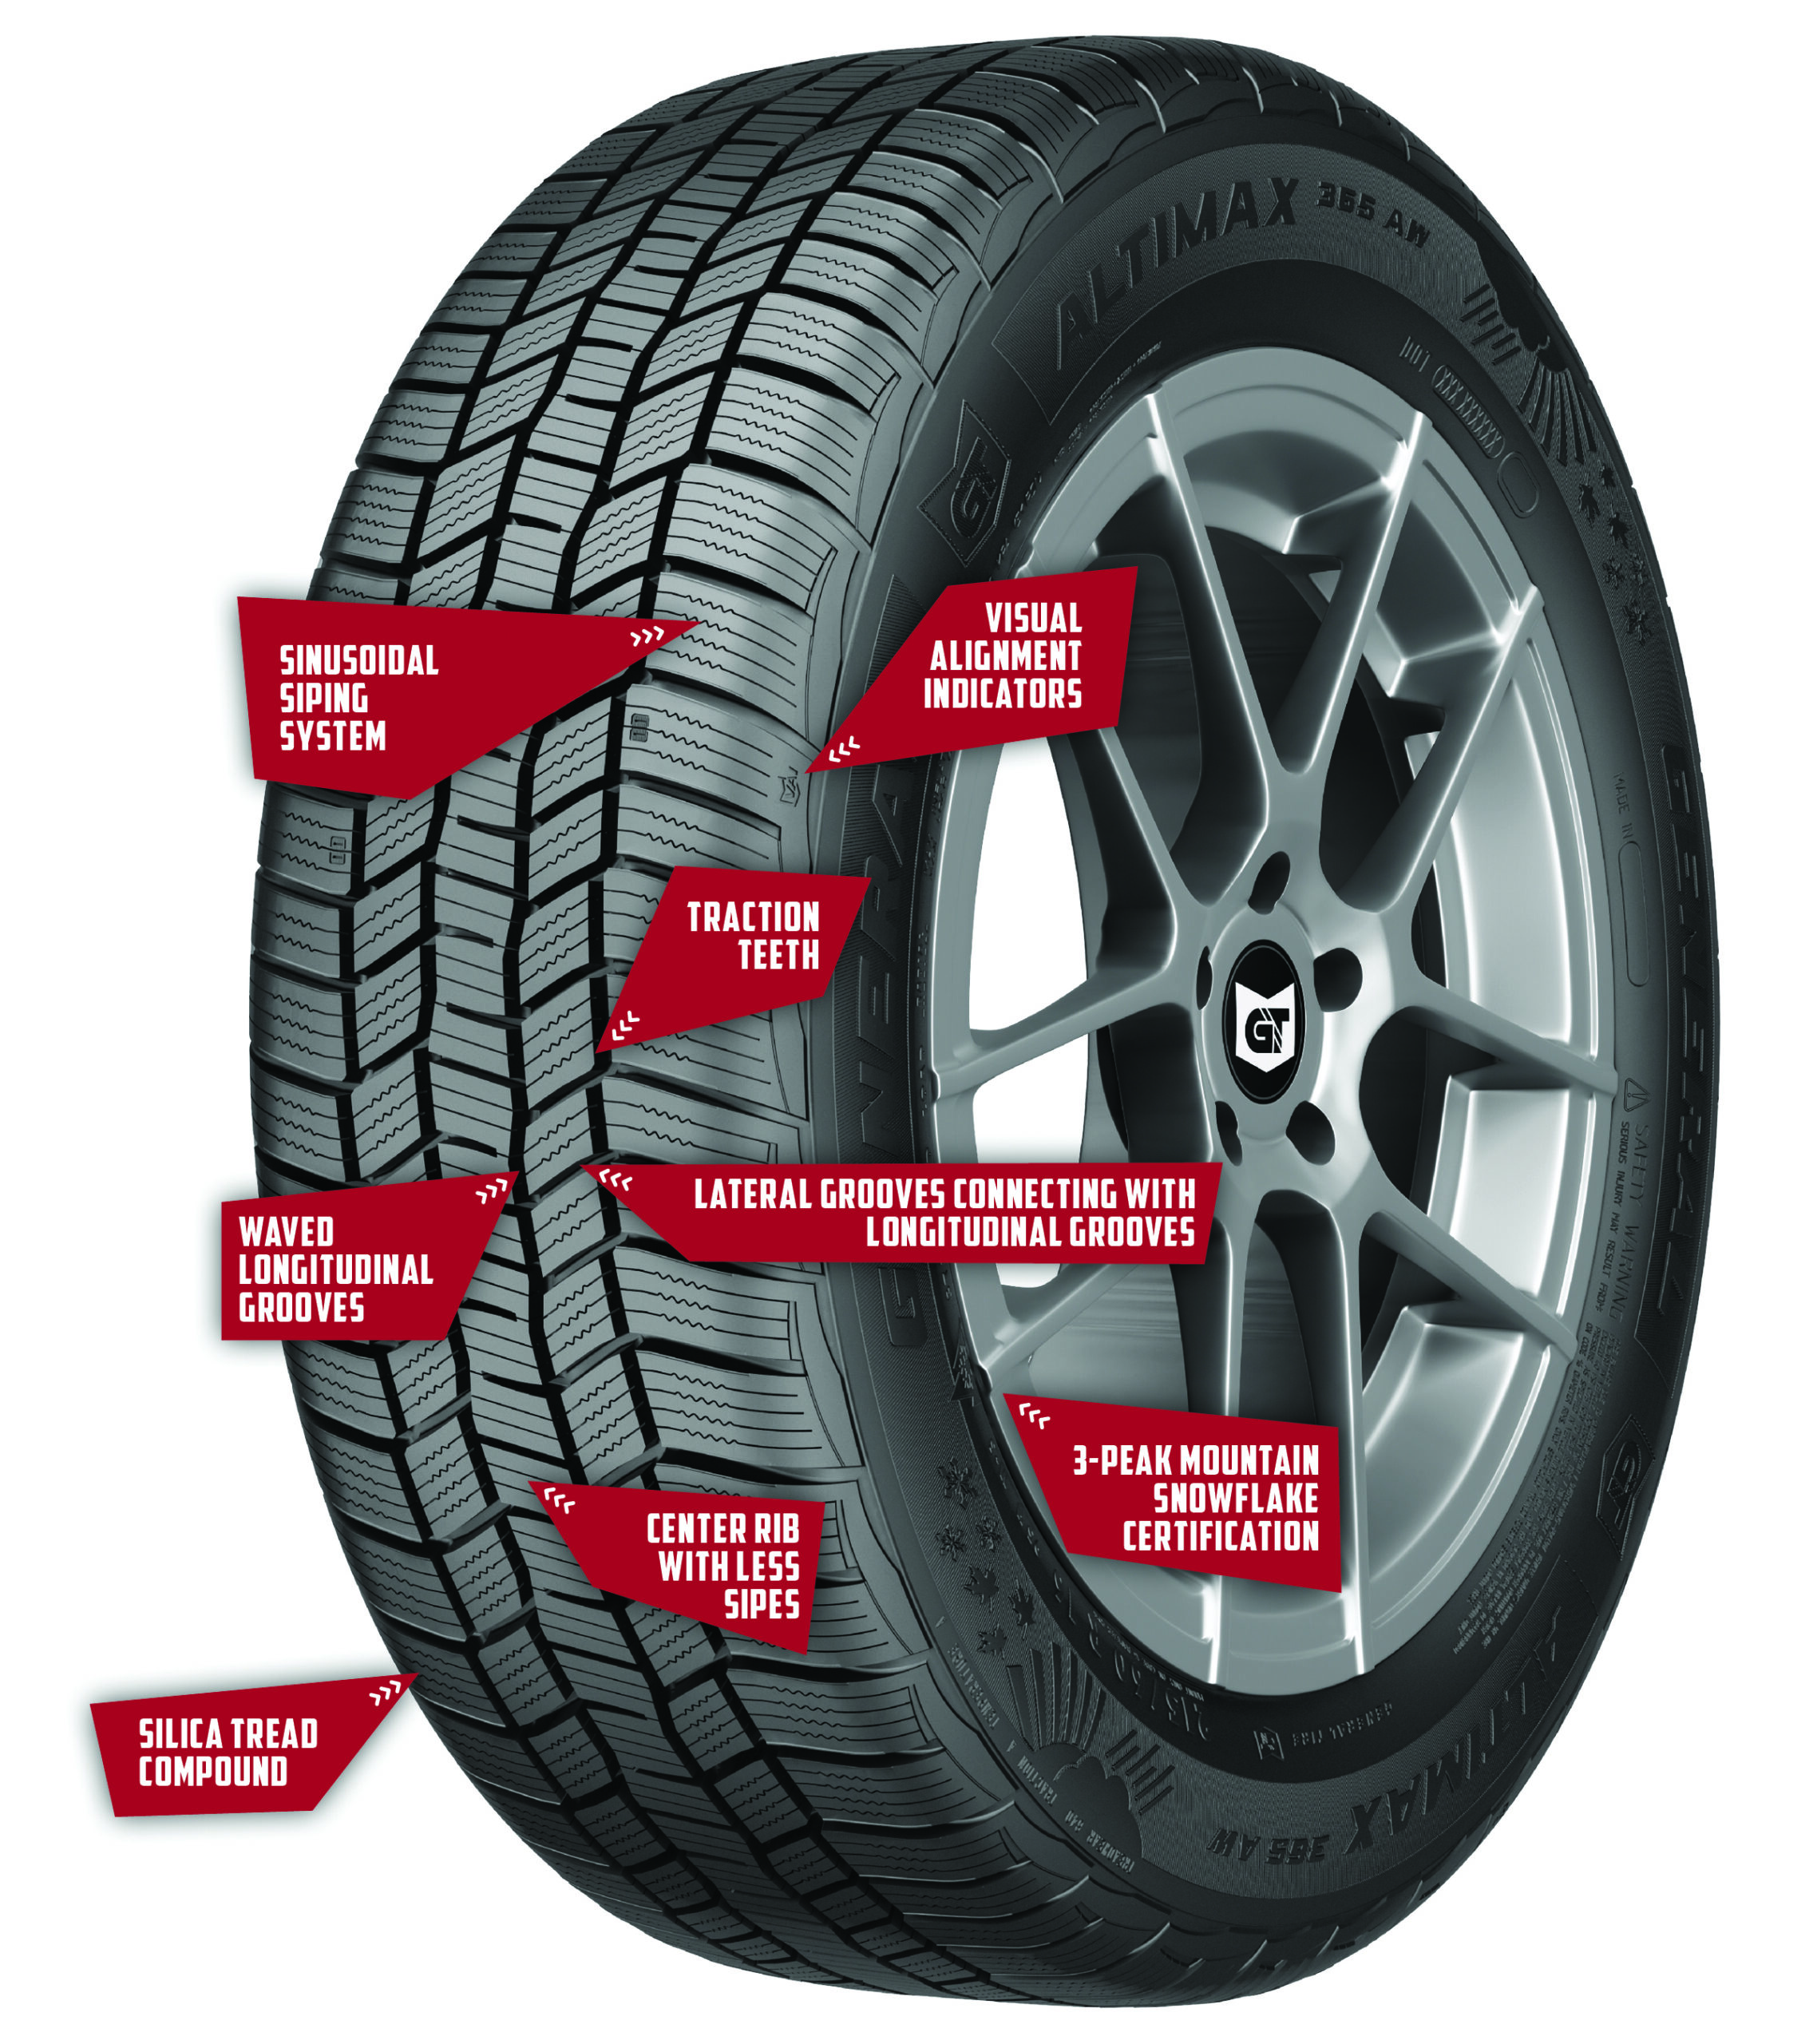 AltiMAX 365 AW tire innovative features